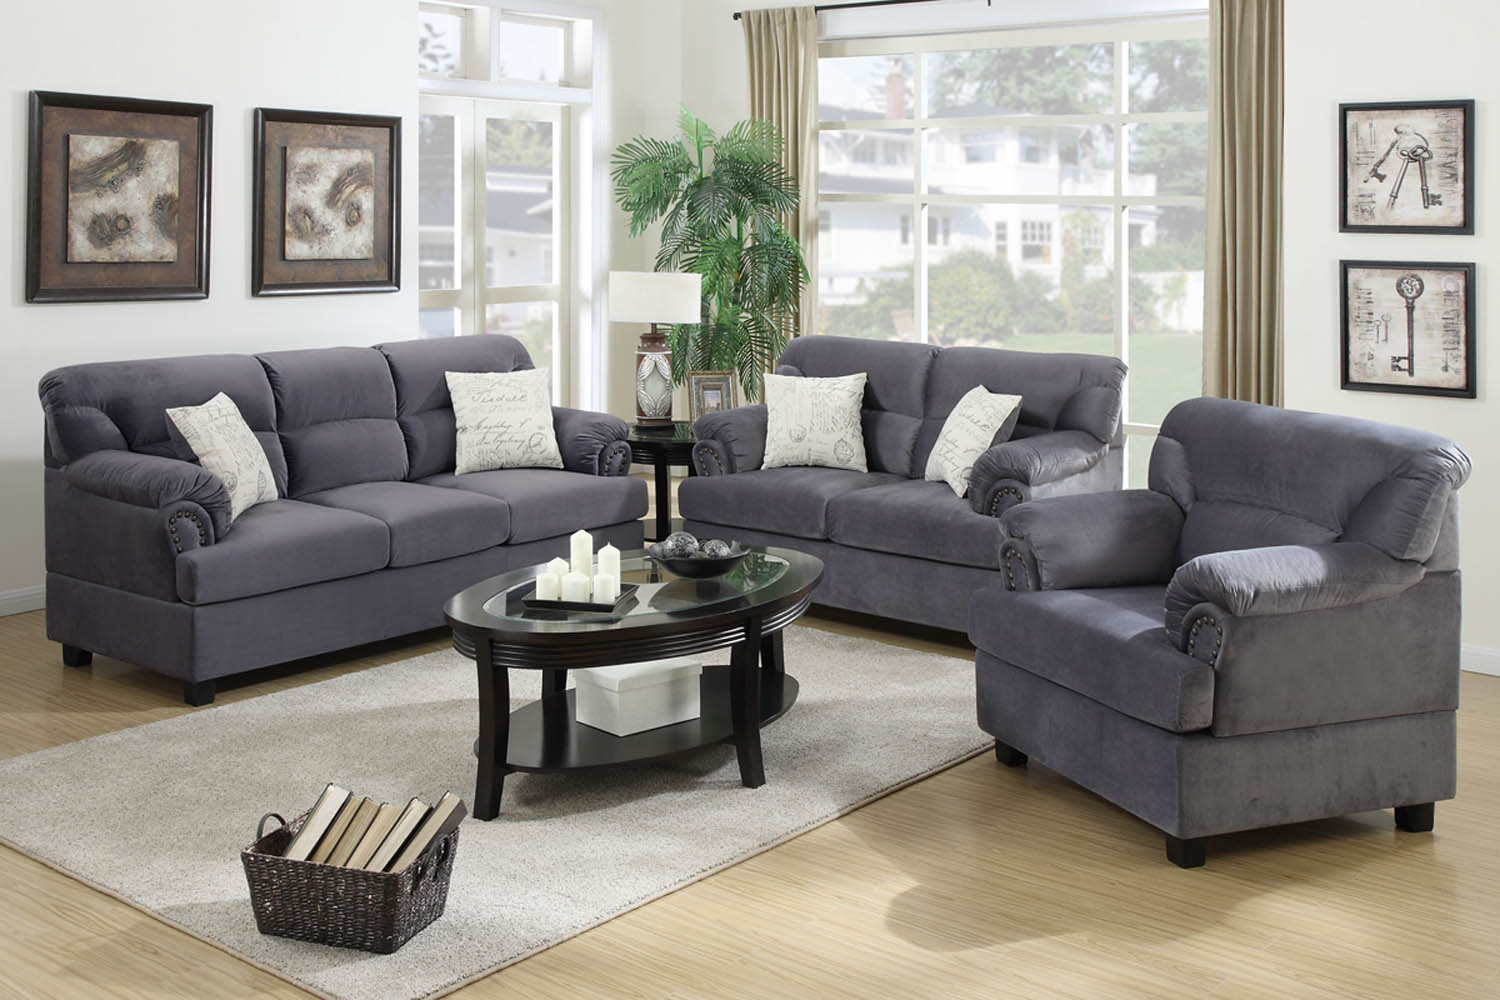 suede living room furniture light blue 3 piece grey miro fiber sofa set umff7916 jpg